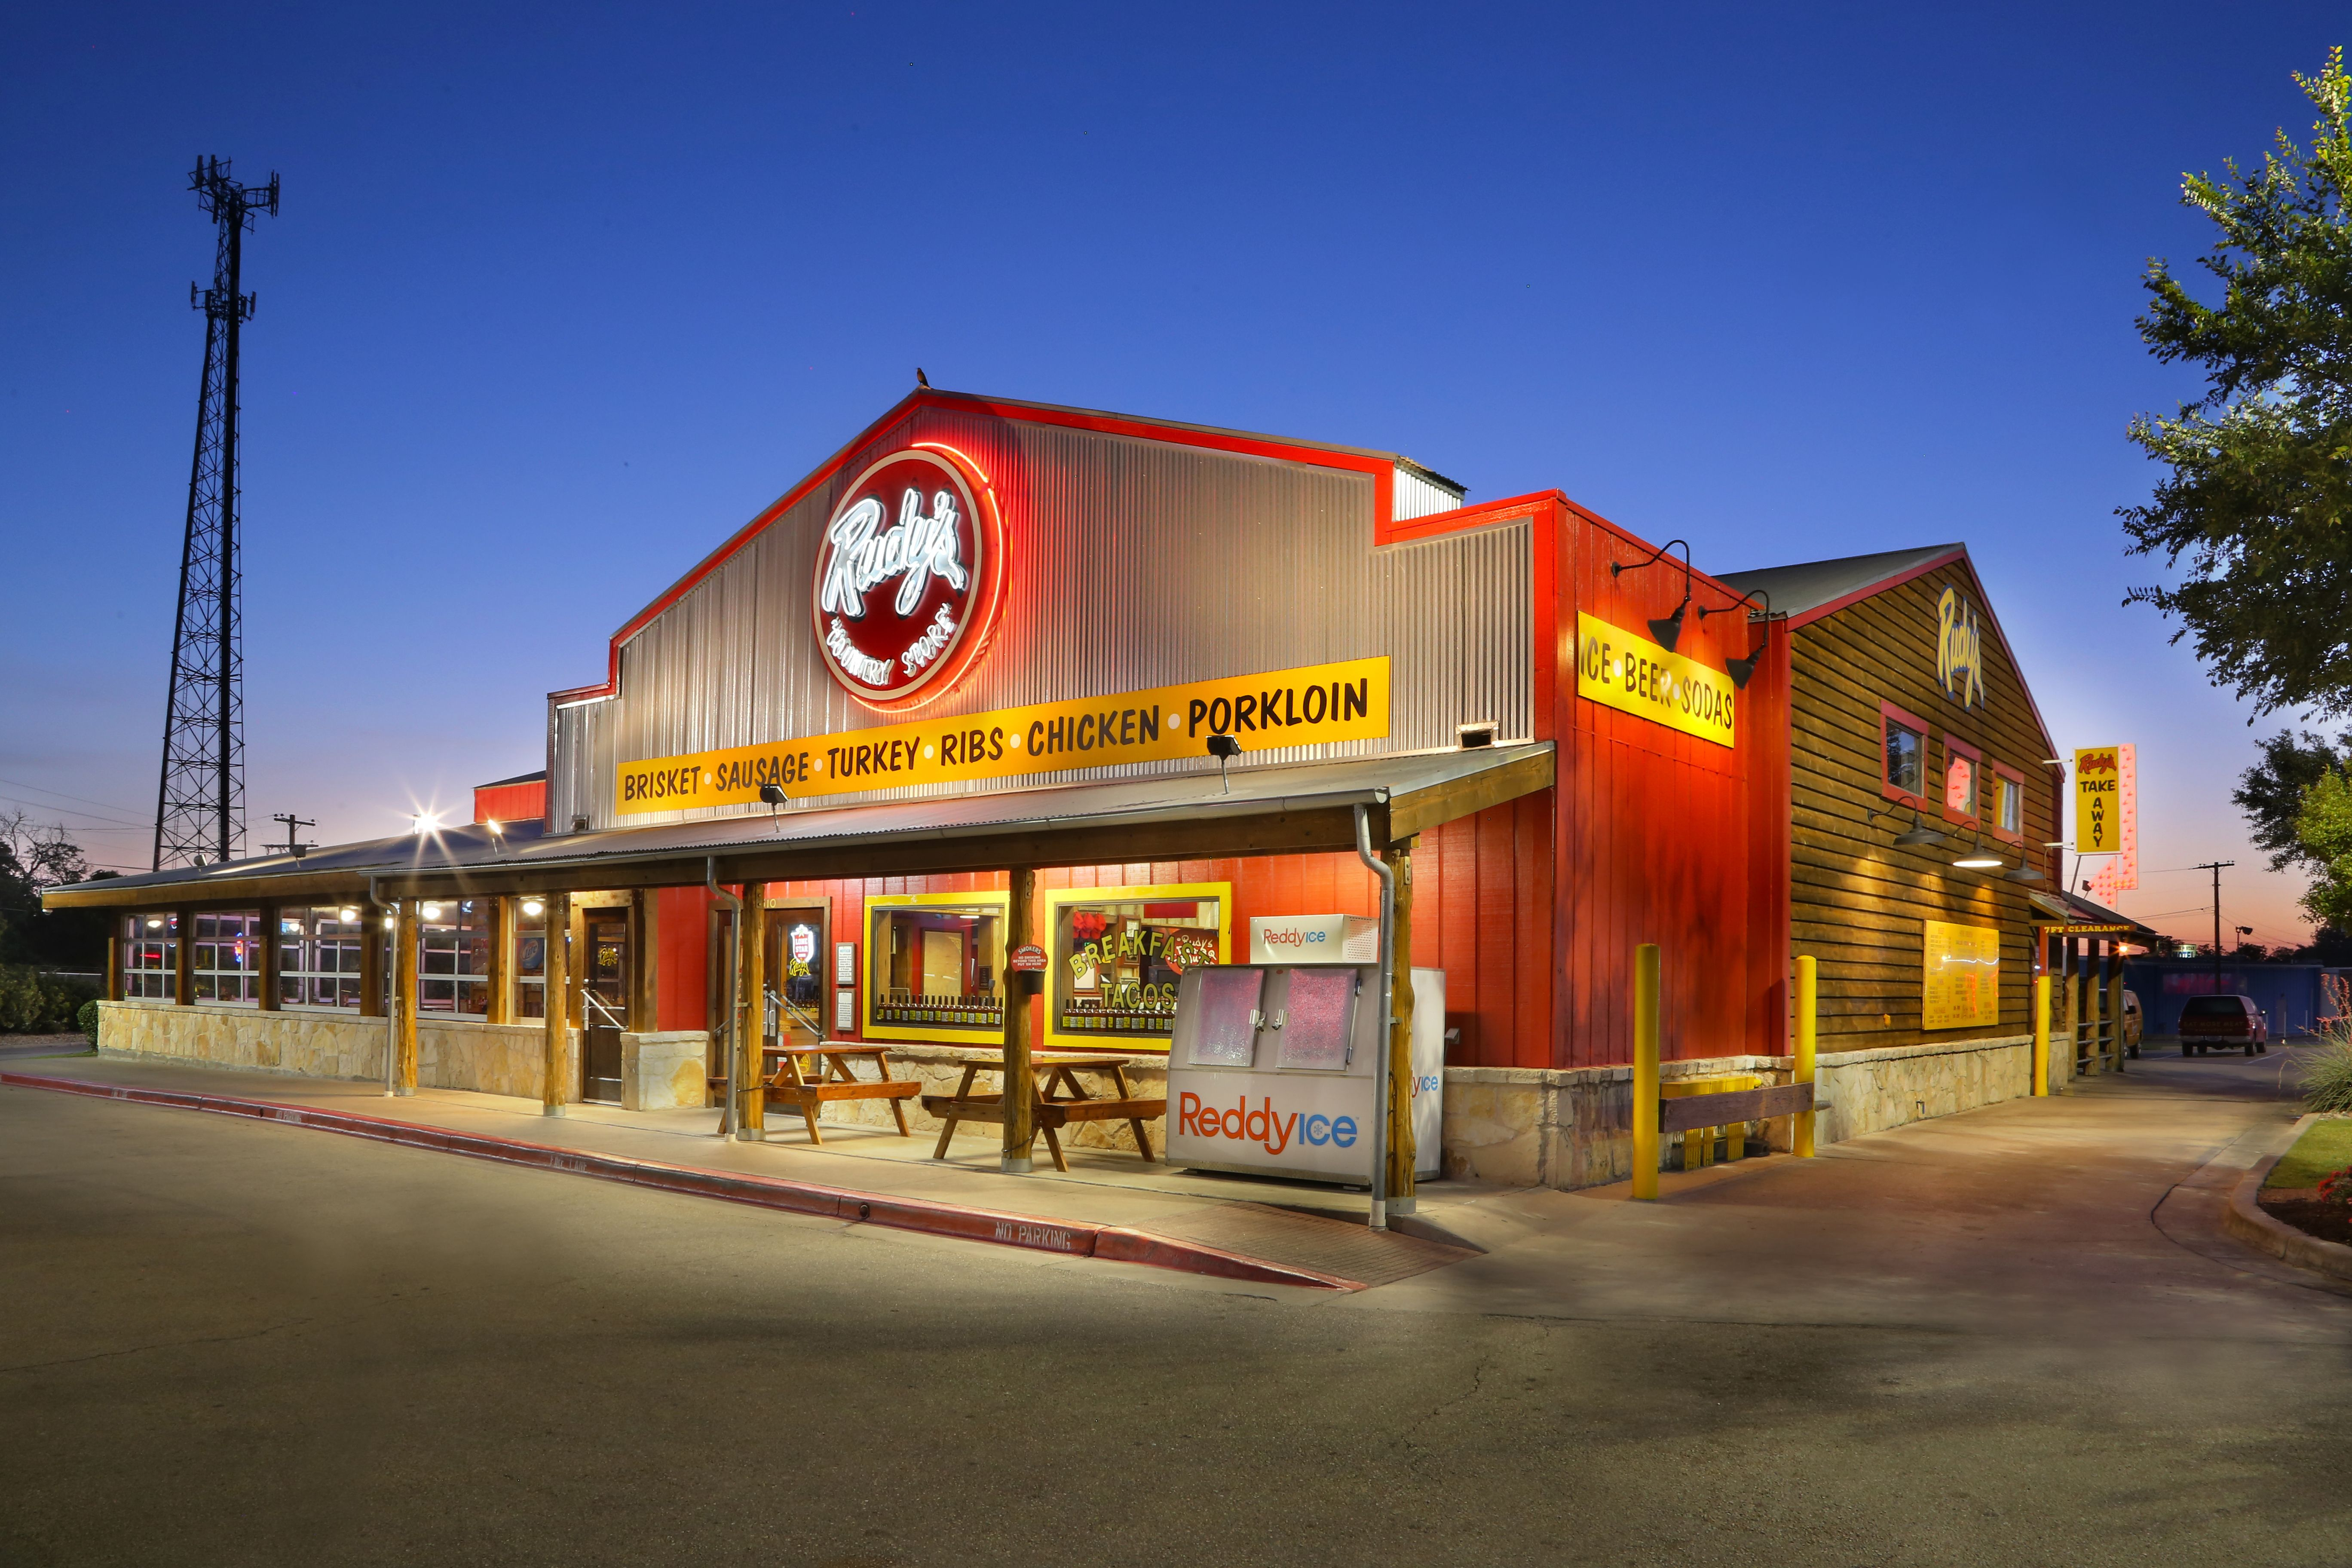 Waco Tx Rudy S Country Store And Barbecue Real Texas Bar B Q Now Shipping Bbq Texas Restaurant Bbq Restaurant Bbq